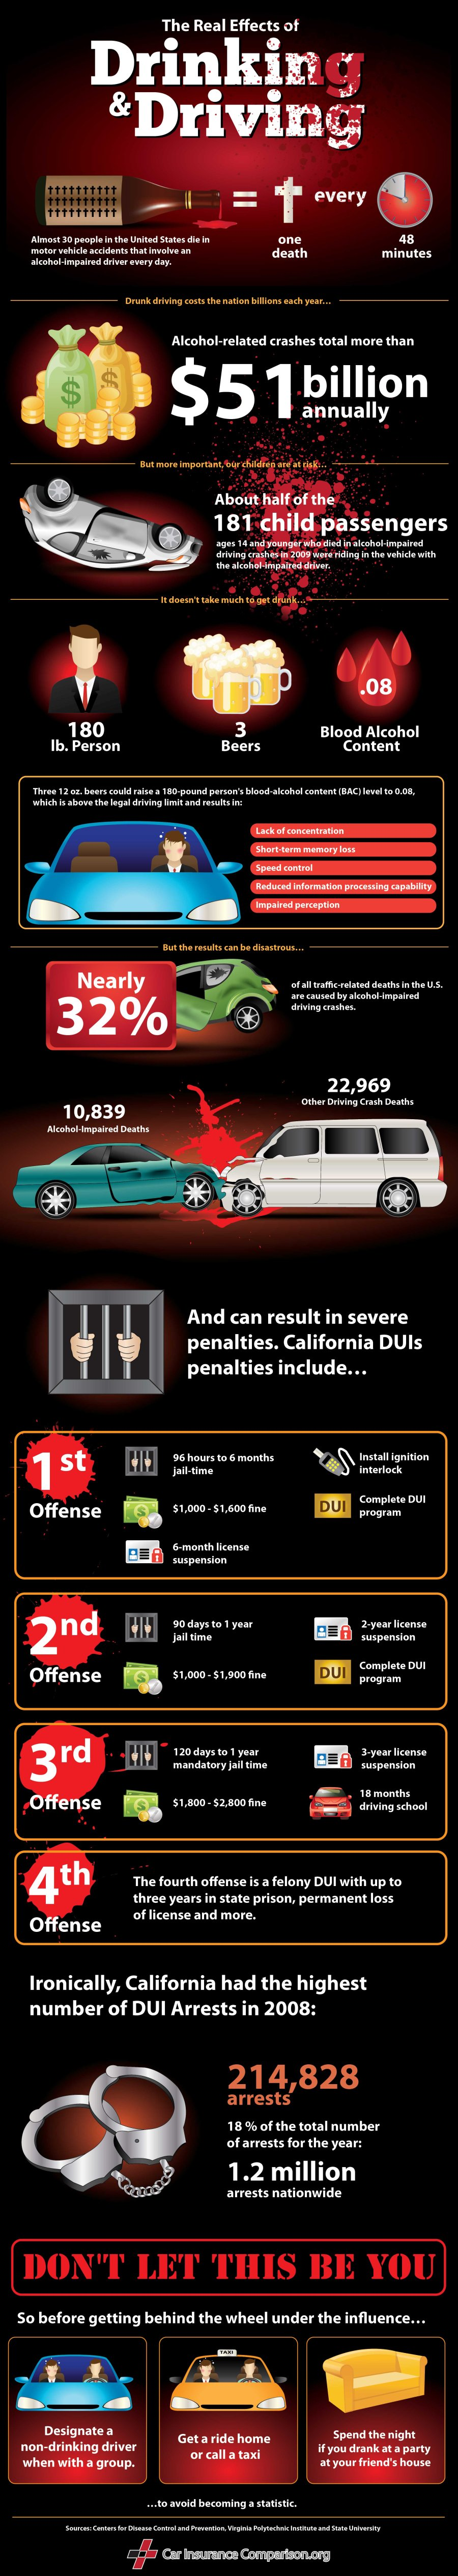 Drunk Driving Statistics Facts Infographic